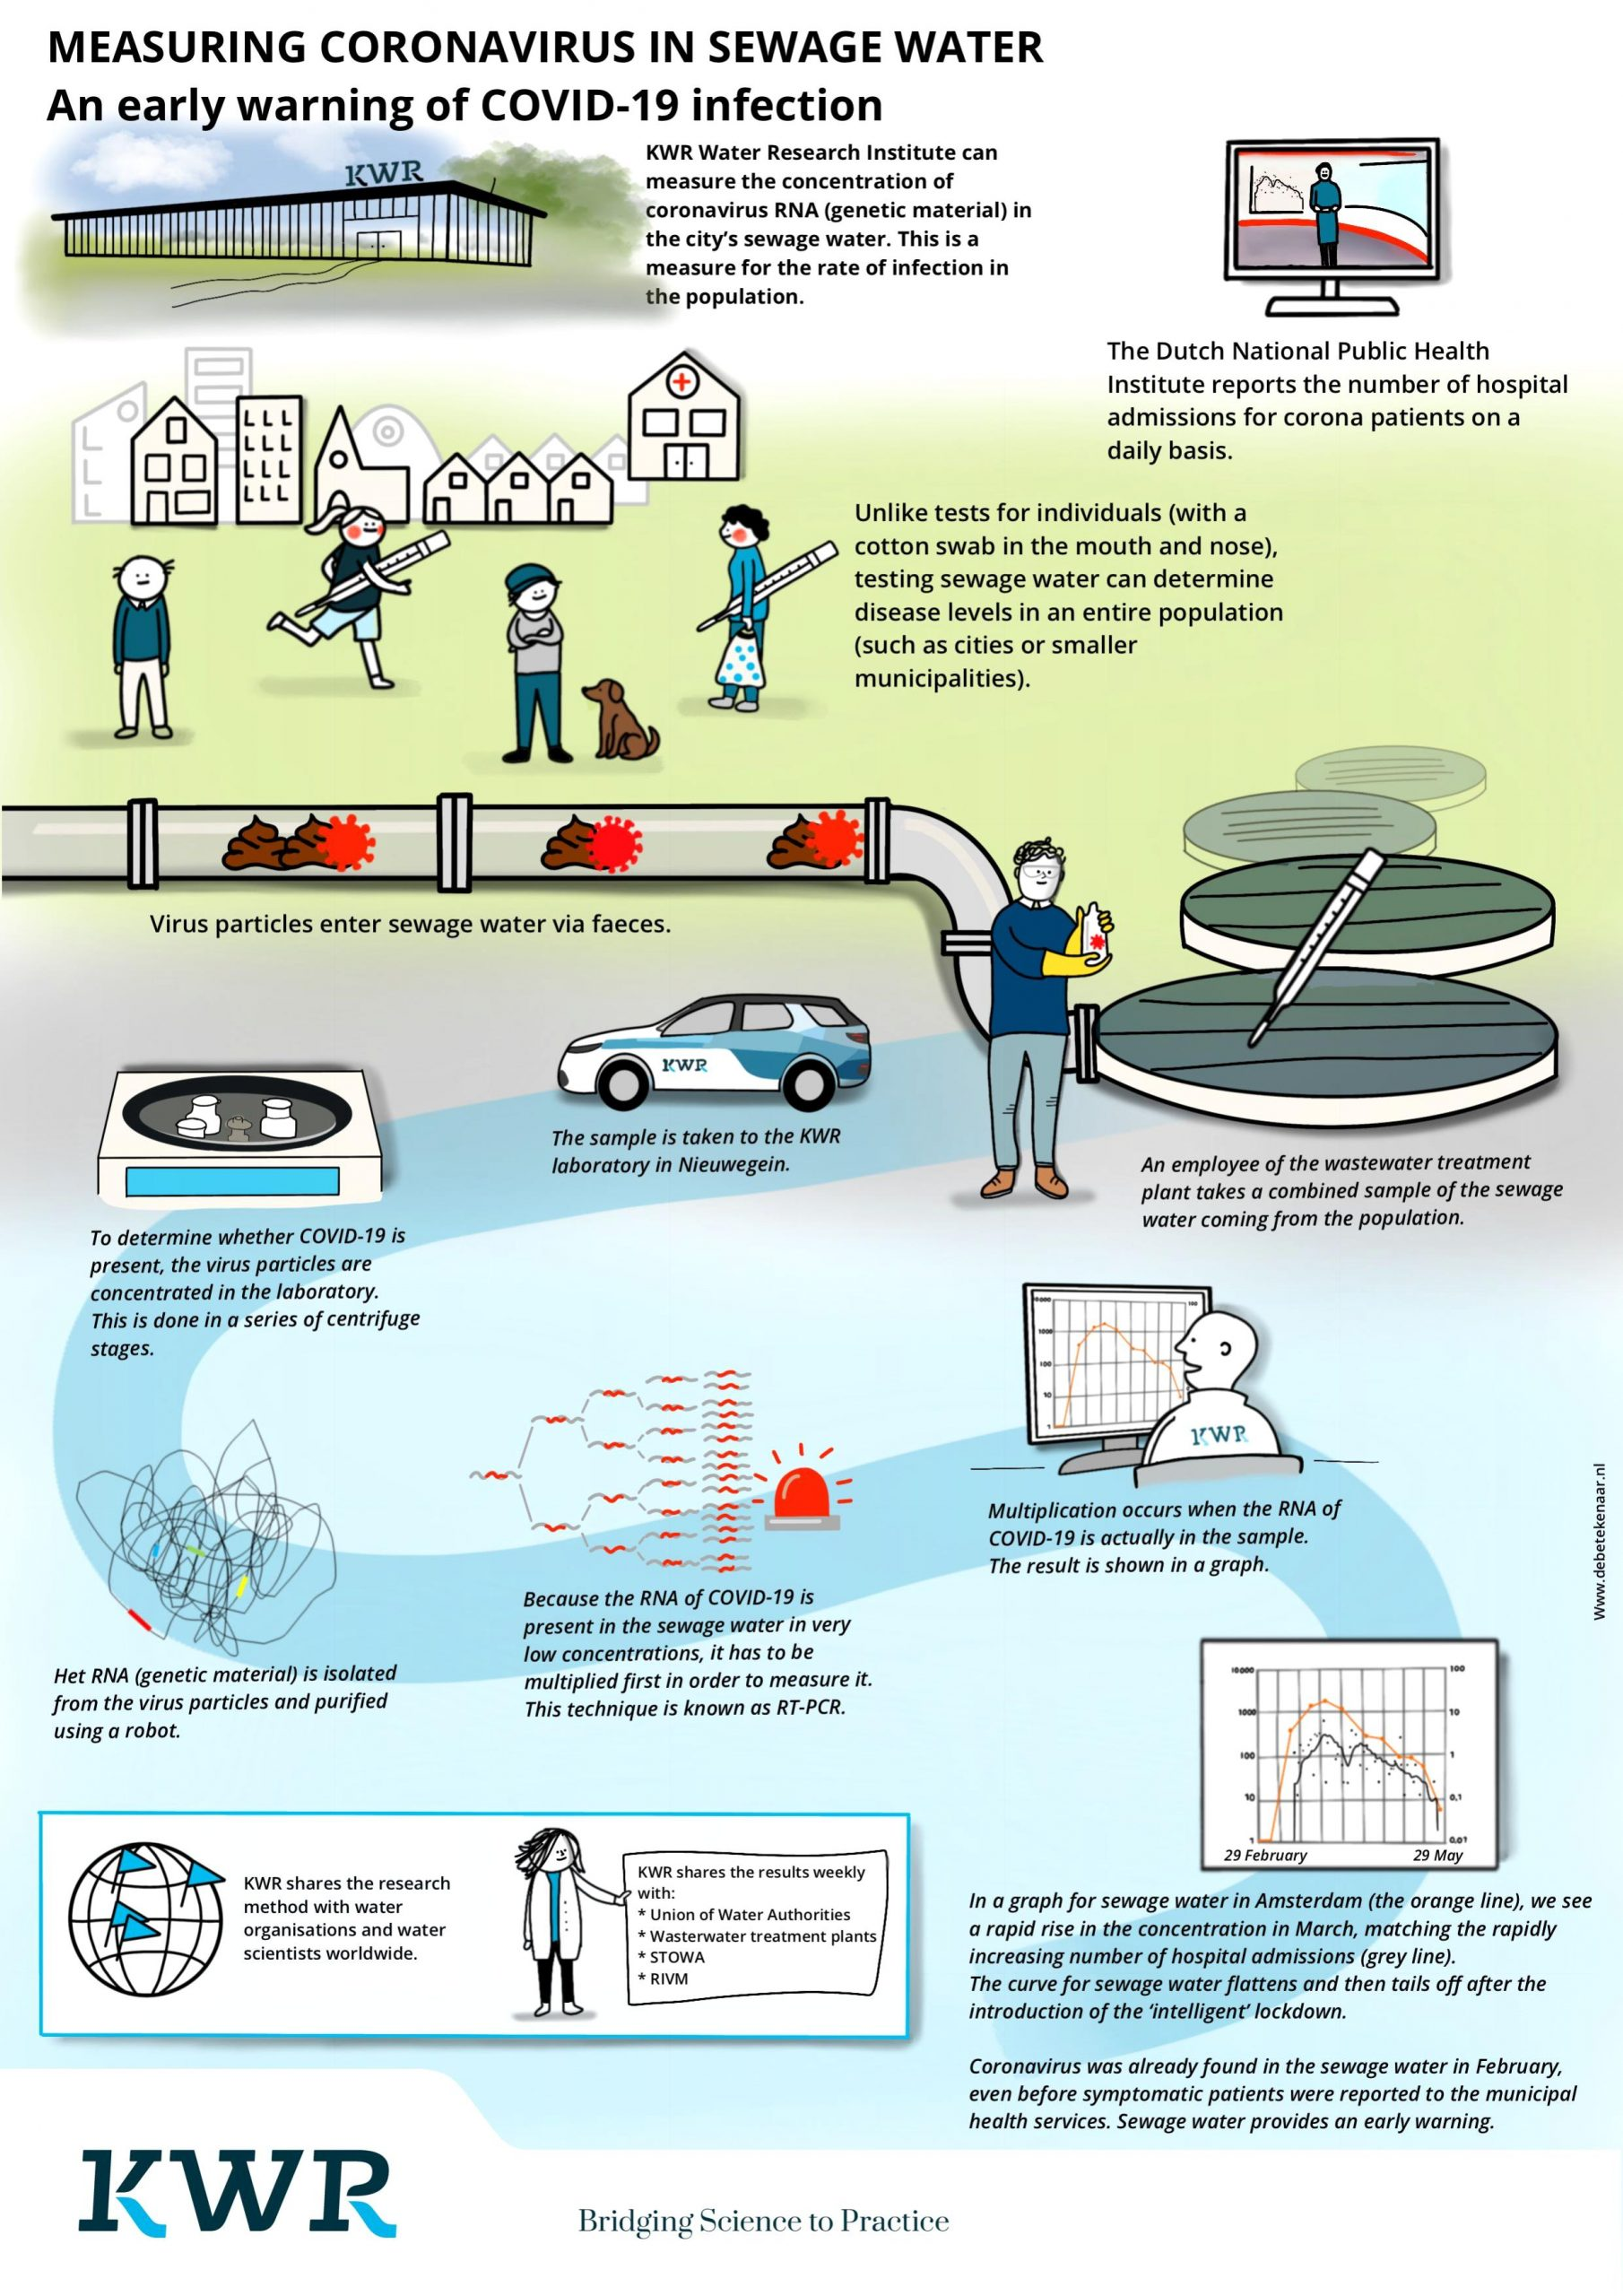 Covid-19 sewage research explained in images